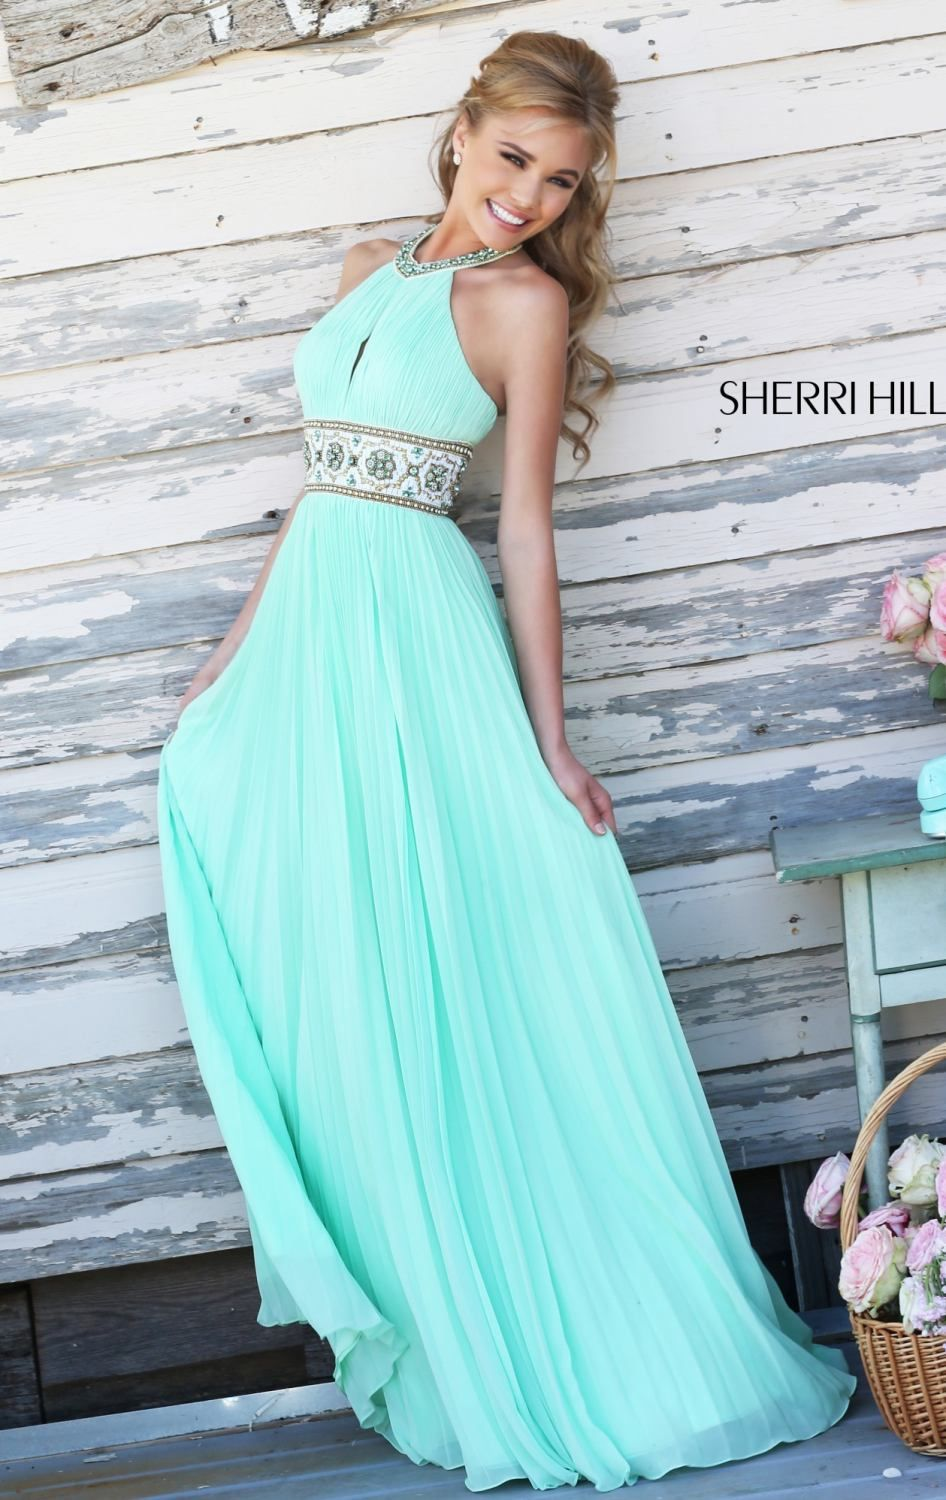 Sherri hill dress missesdressy sherri hill spring